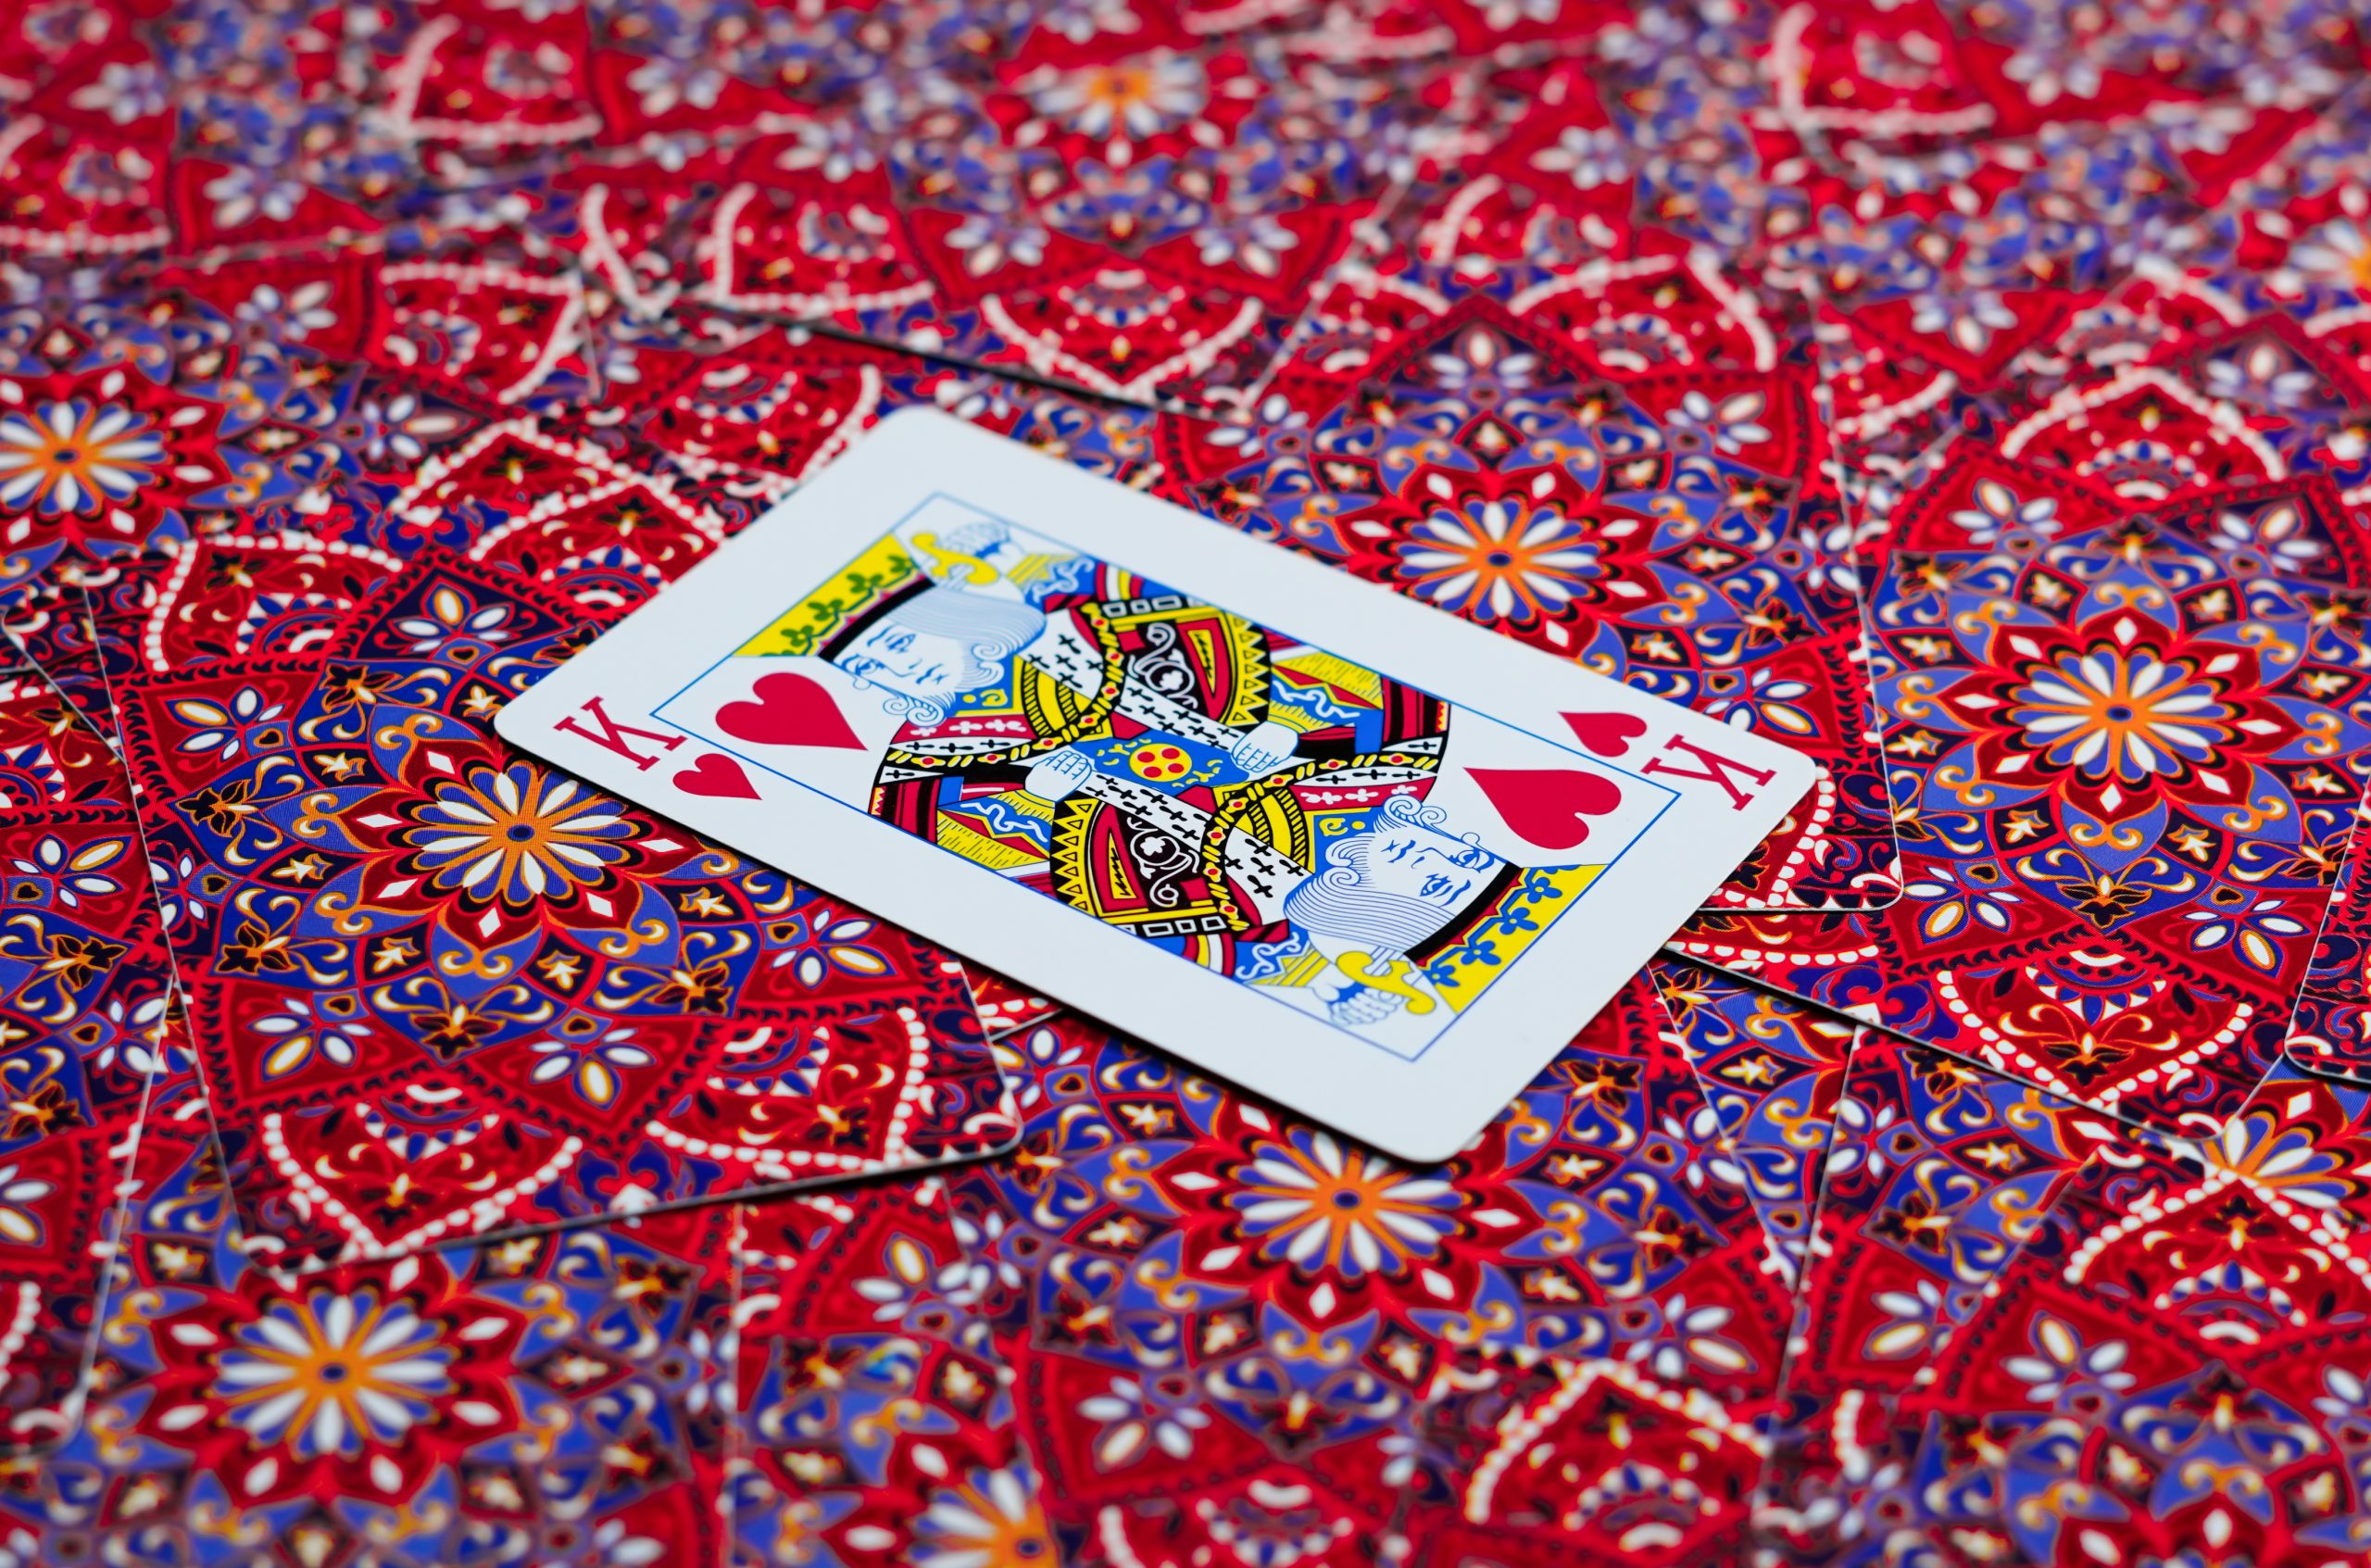 King of hearts in cards